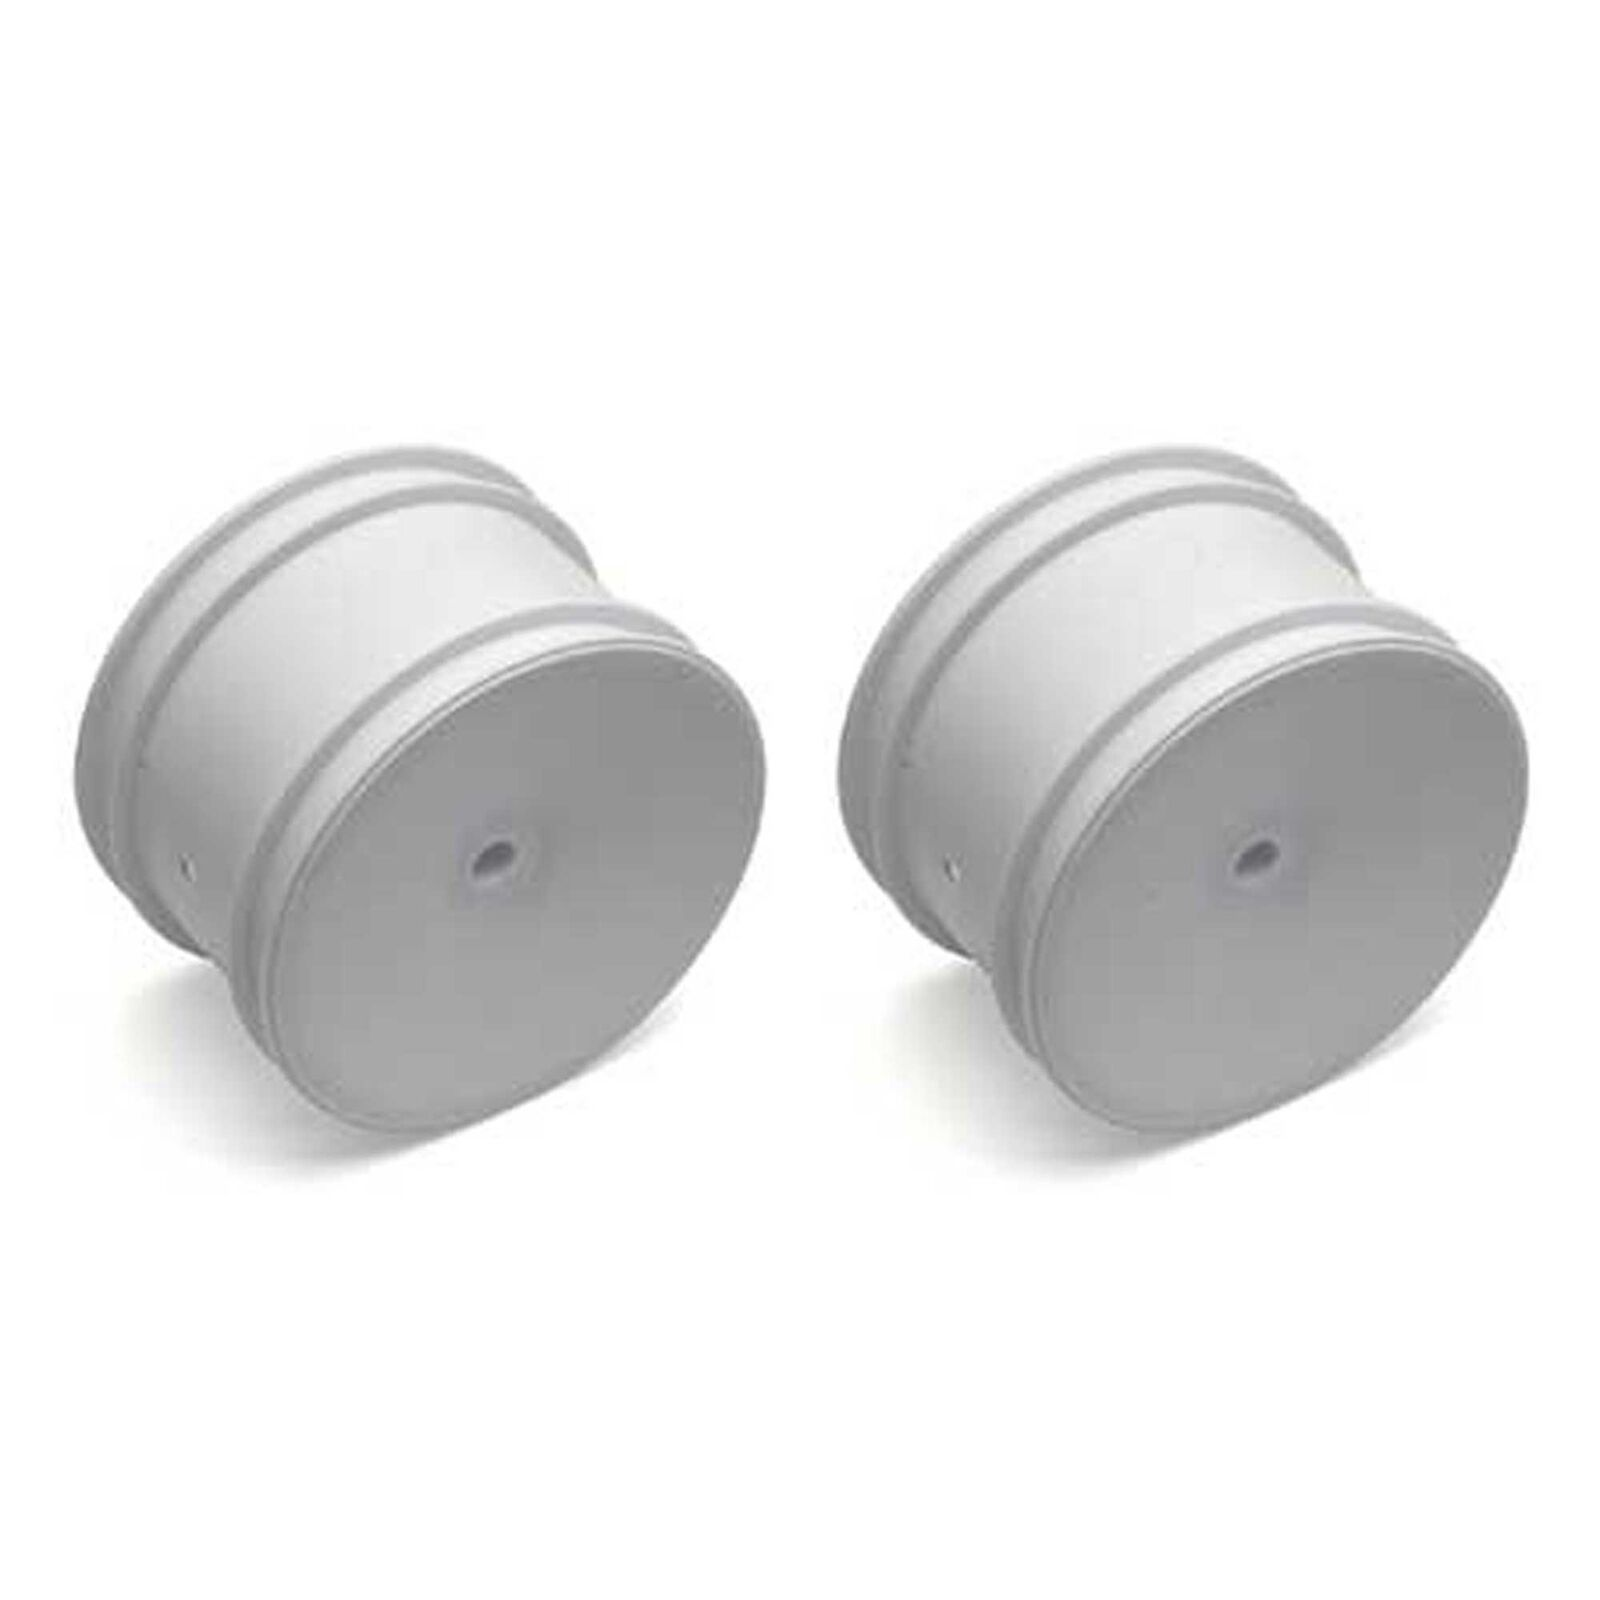 1/10 Rear 12mm Hex Wheels, White (2): Buggy